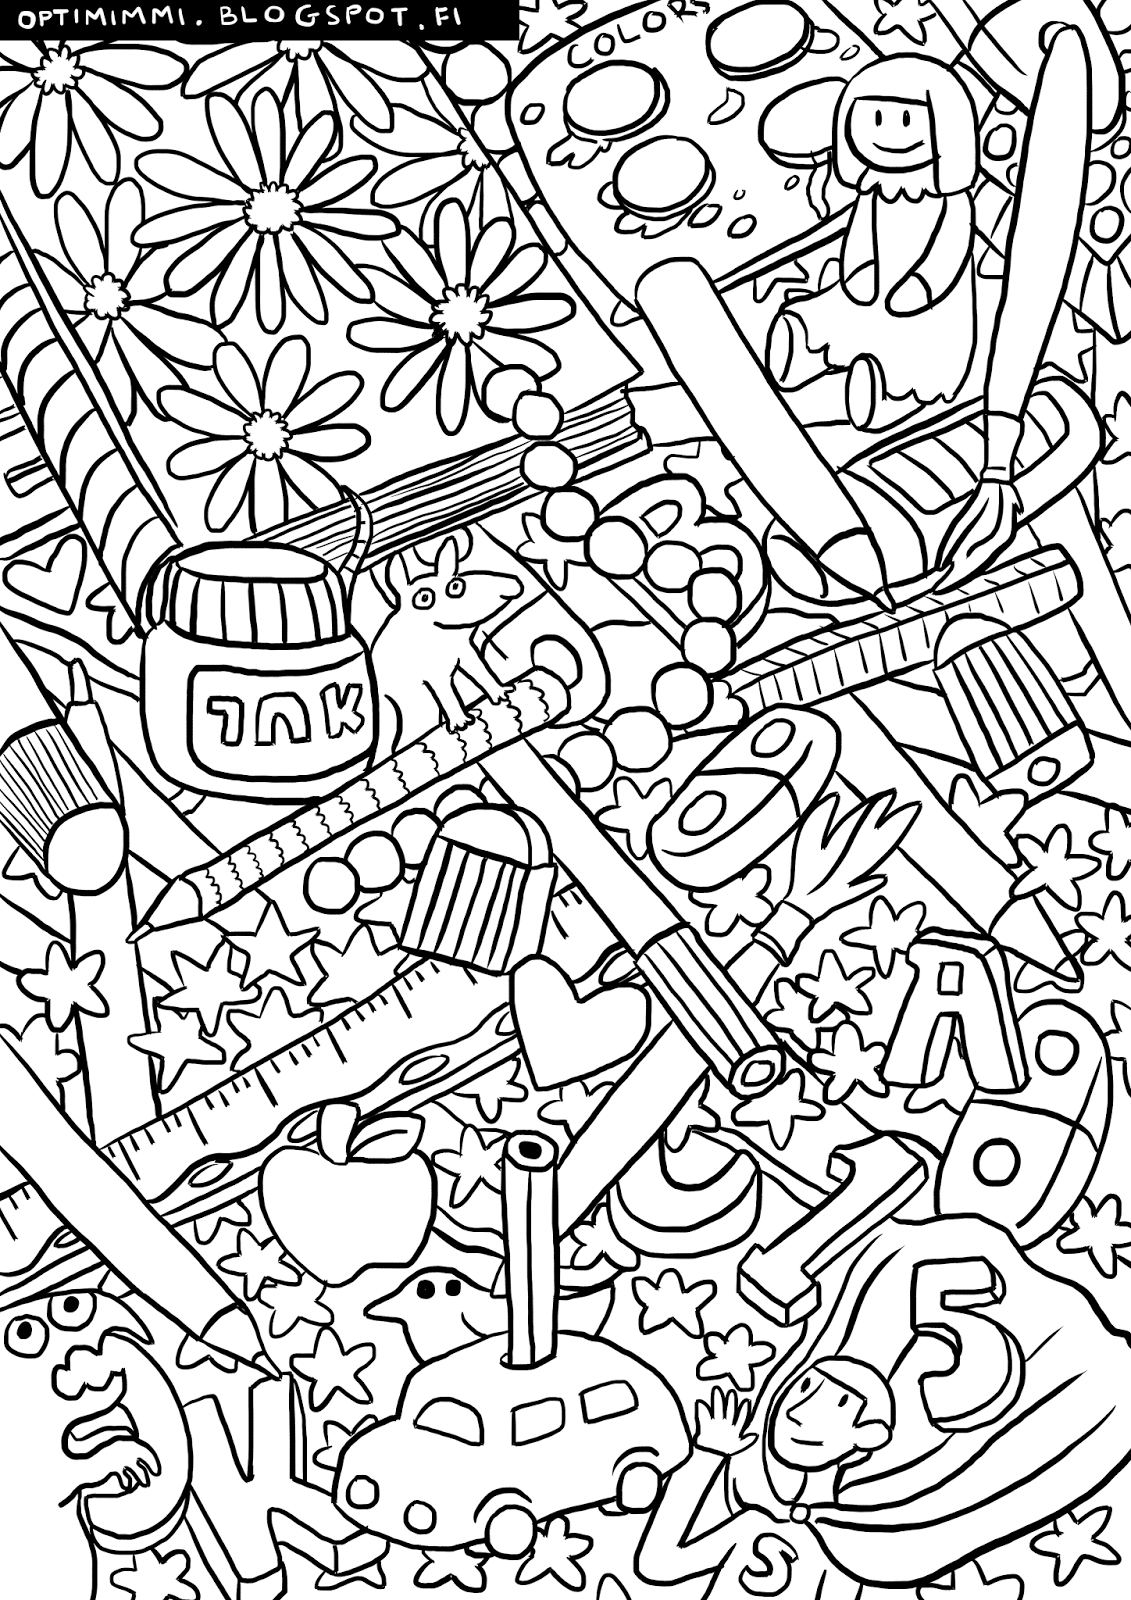 This Image Can Be Printed As A Coloring Page Up To The Paper Size